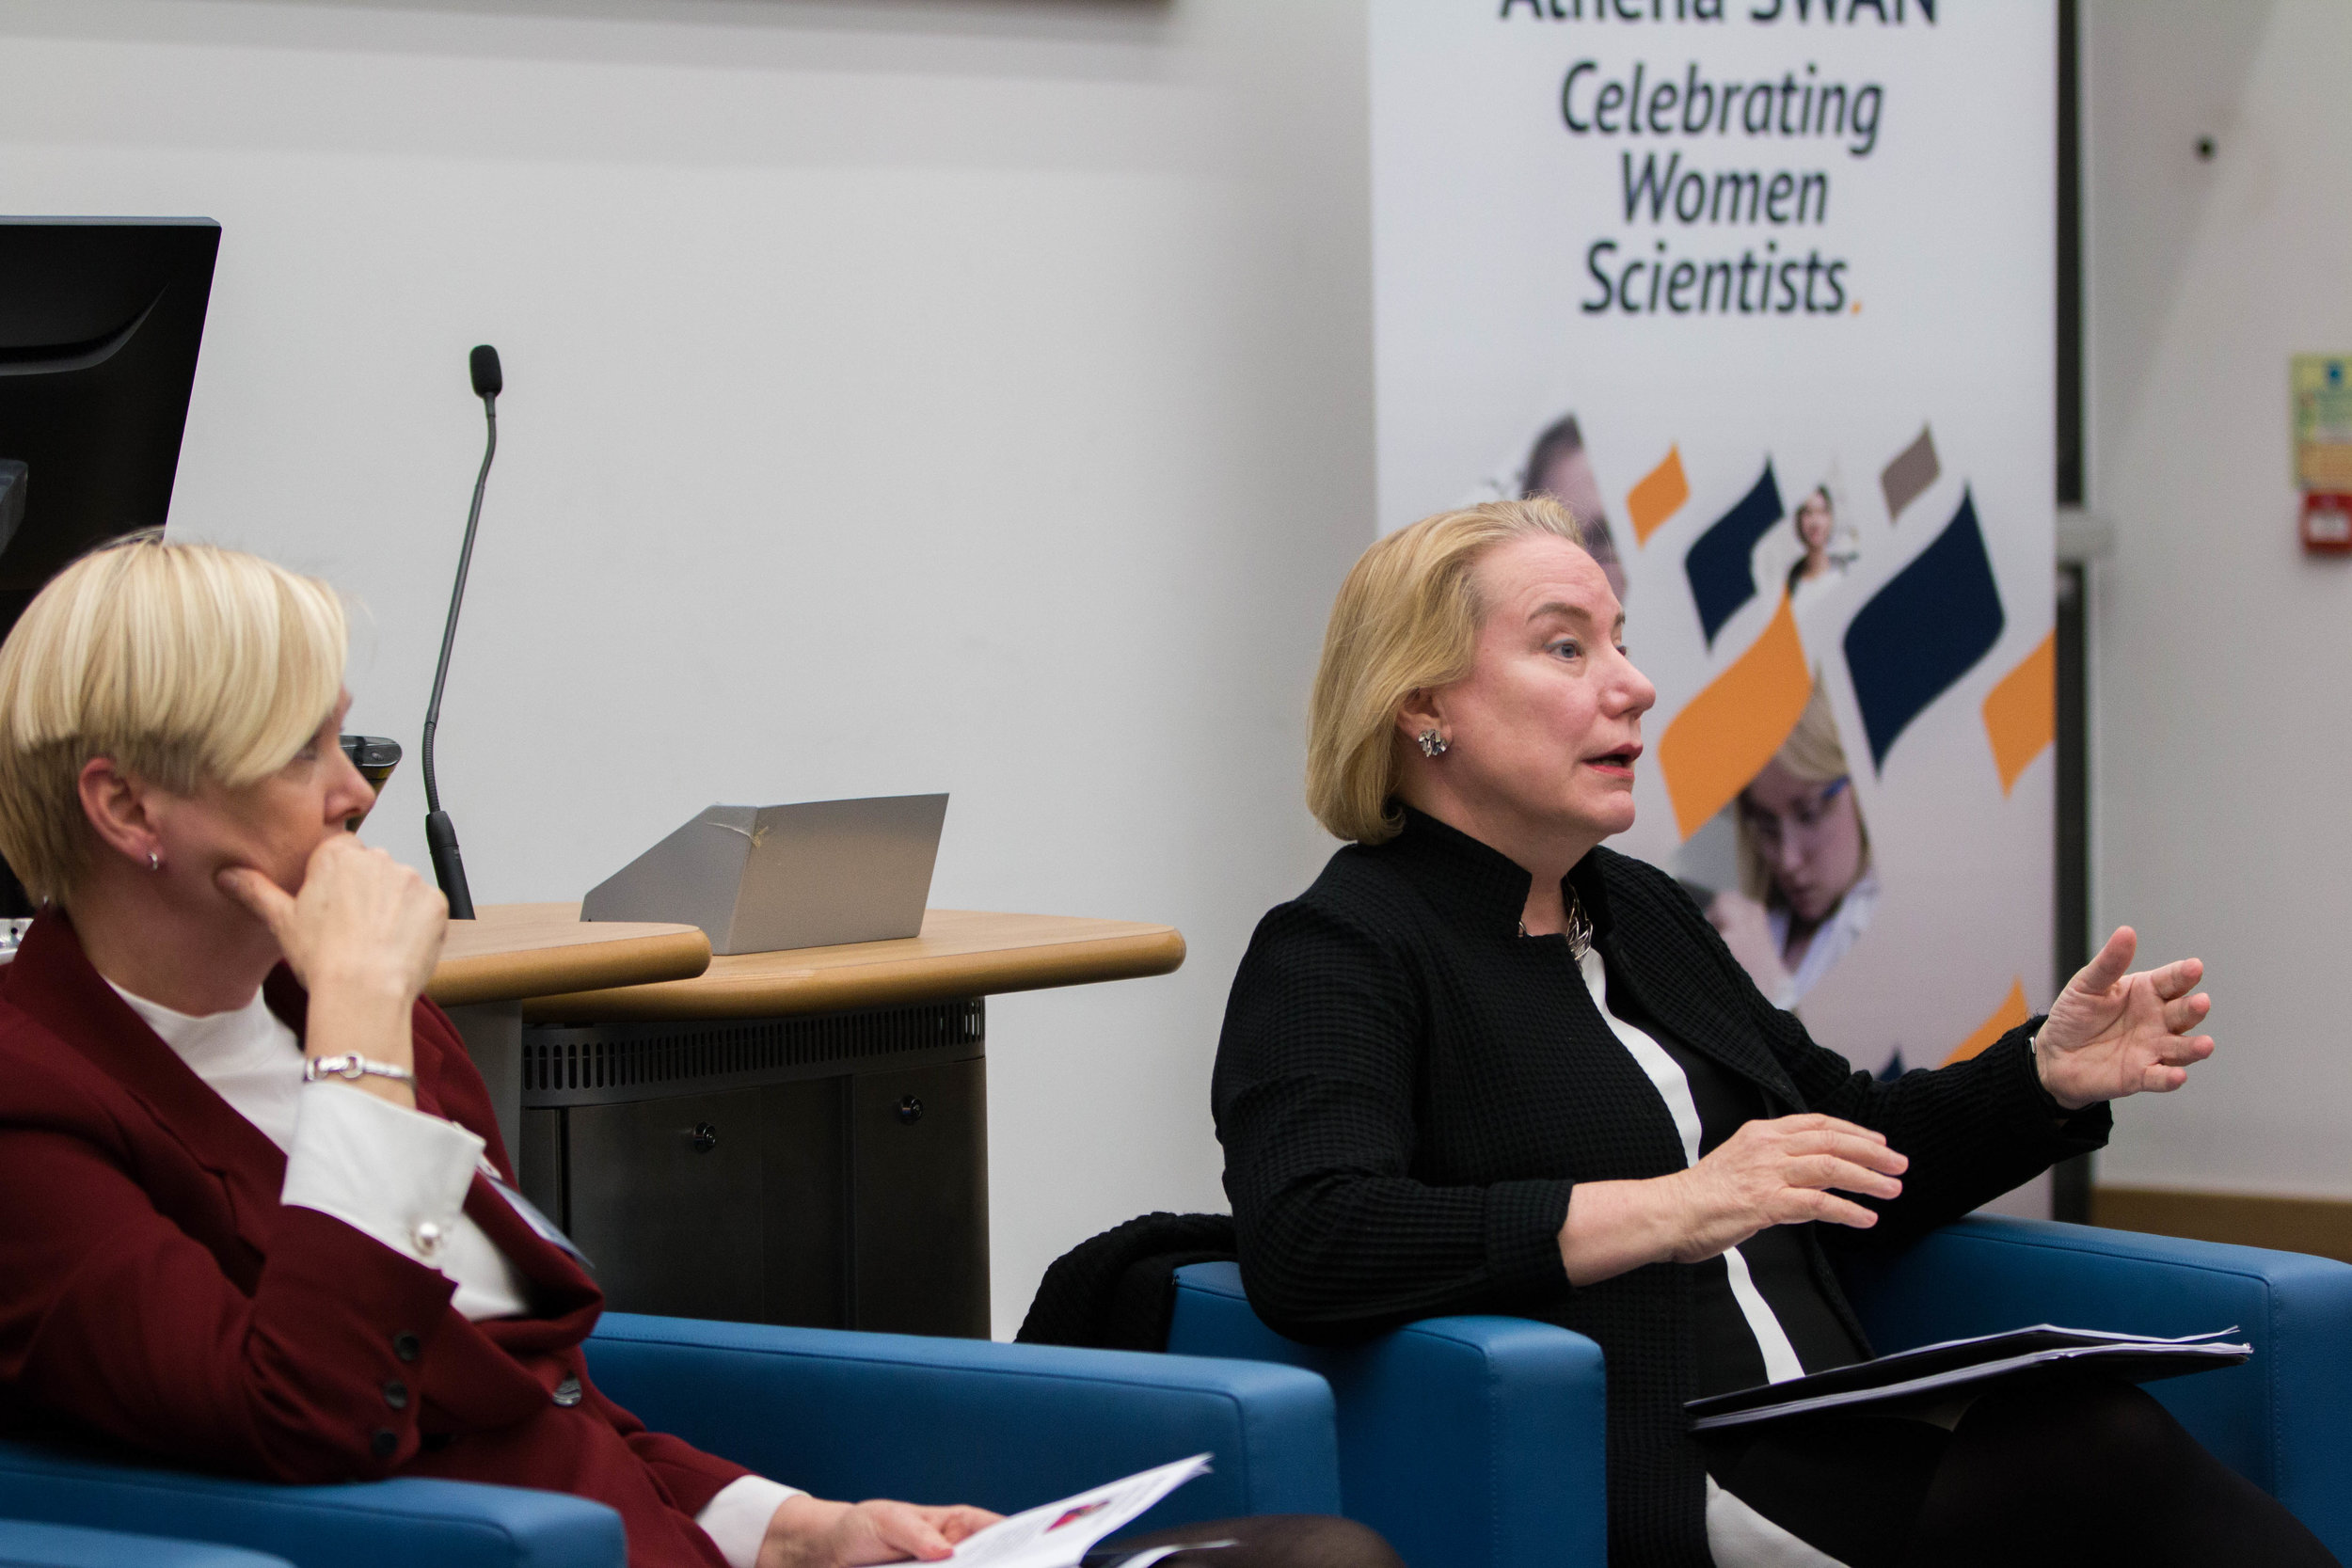 Dr Olivarius speaks at a panel at University of East London